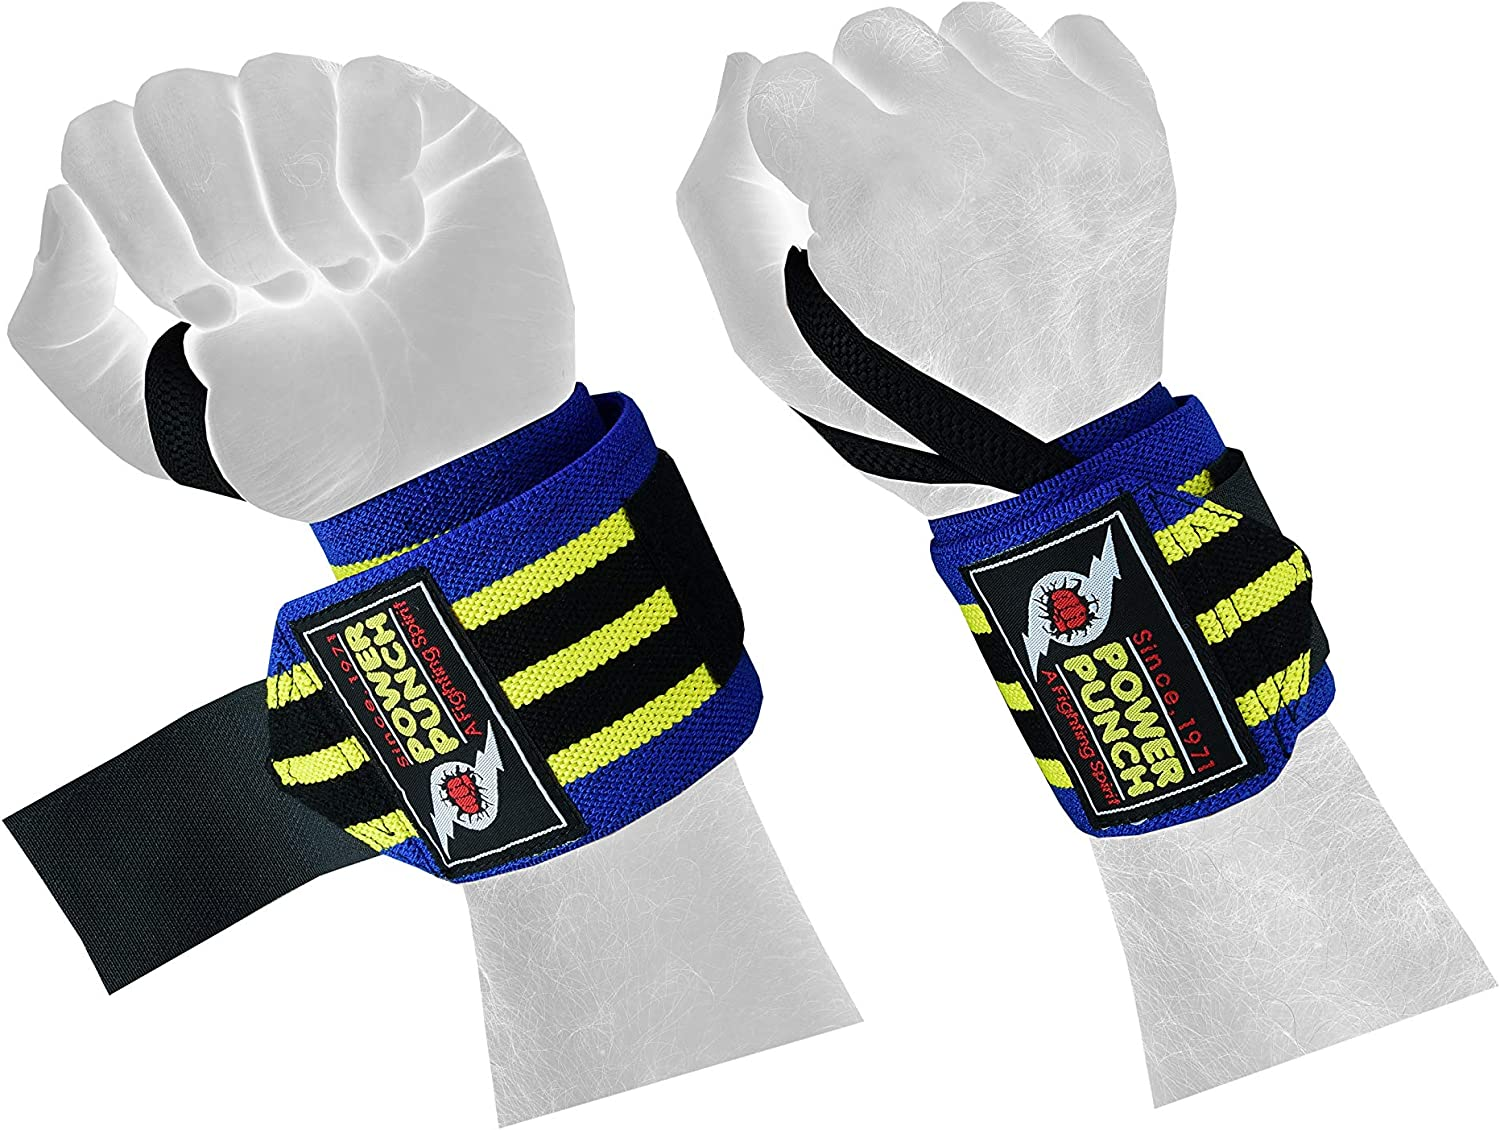 Maximize Your Weightlifting Thumb Loops Gray-Black Camo Pattern Strength Training | Strong Fastening Straps POWER PUNCH Wrist Wraps